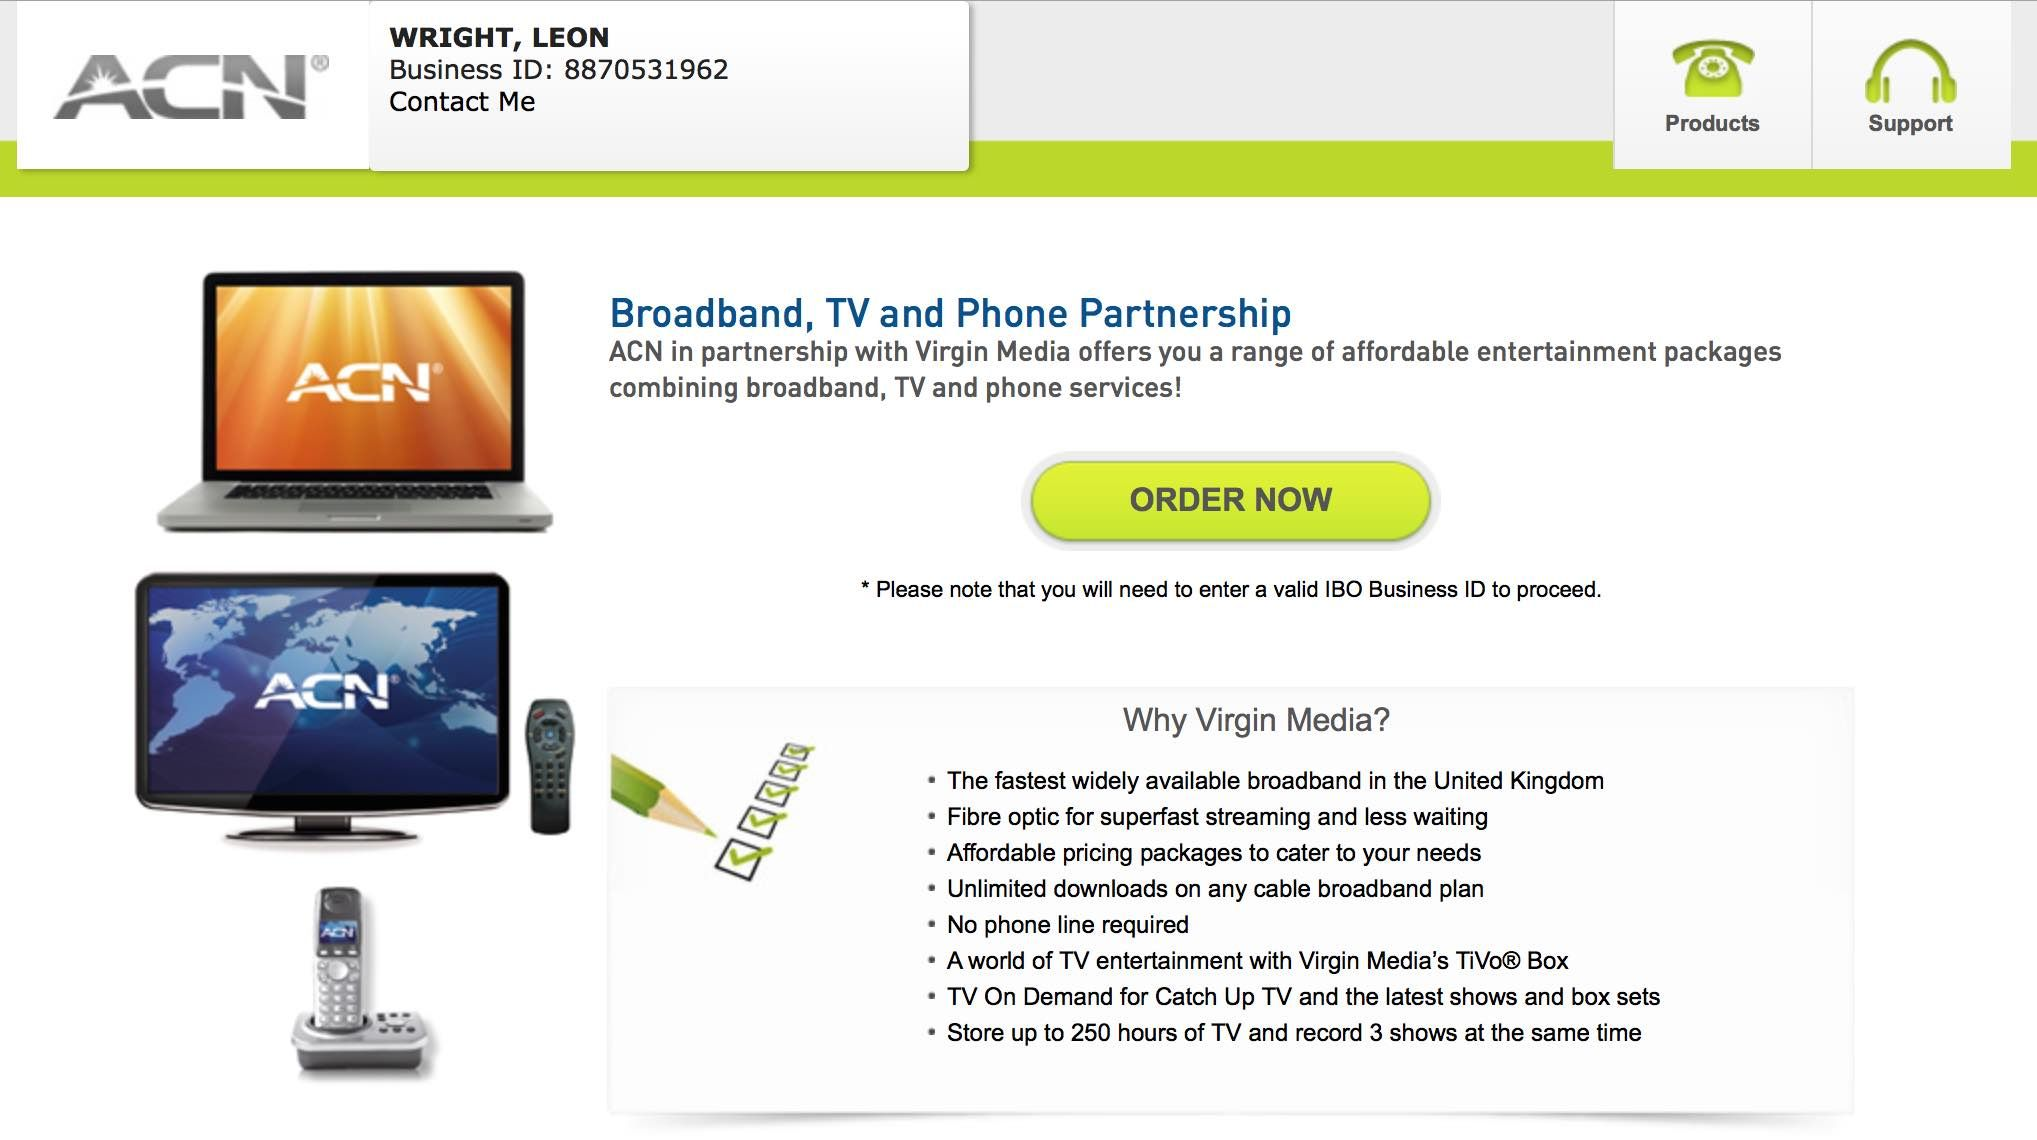 Broadband, TV and Phone Partnership ACN in partnership with